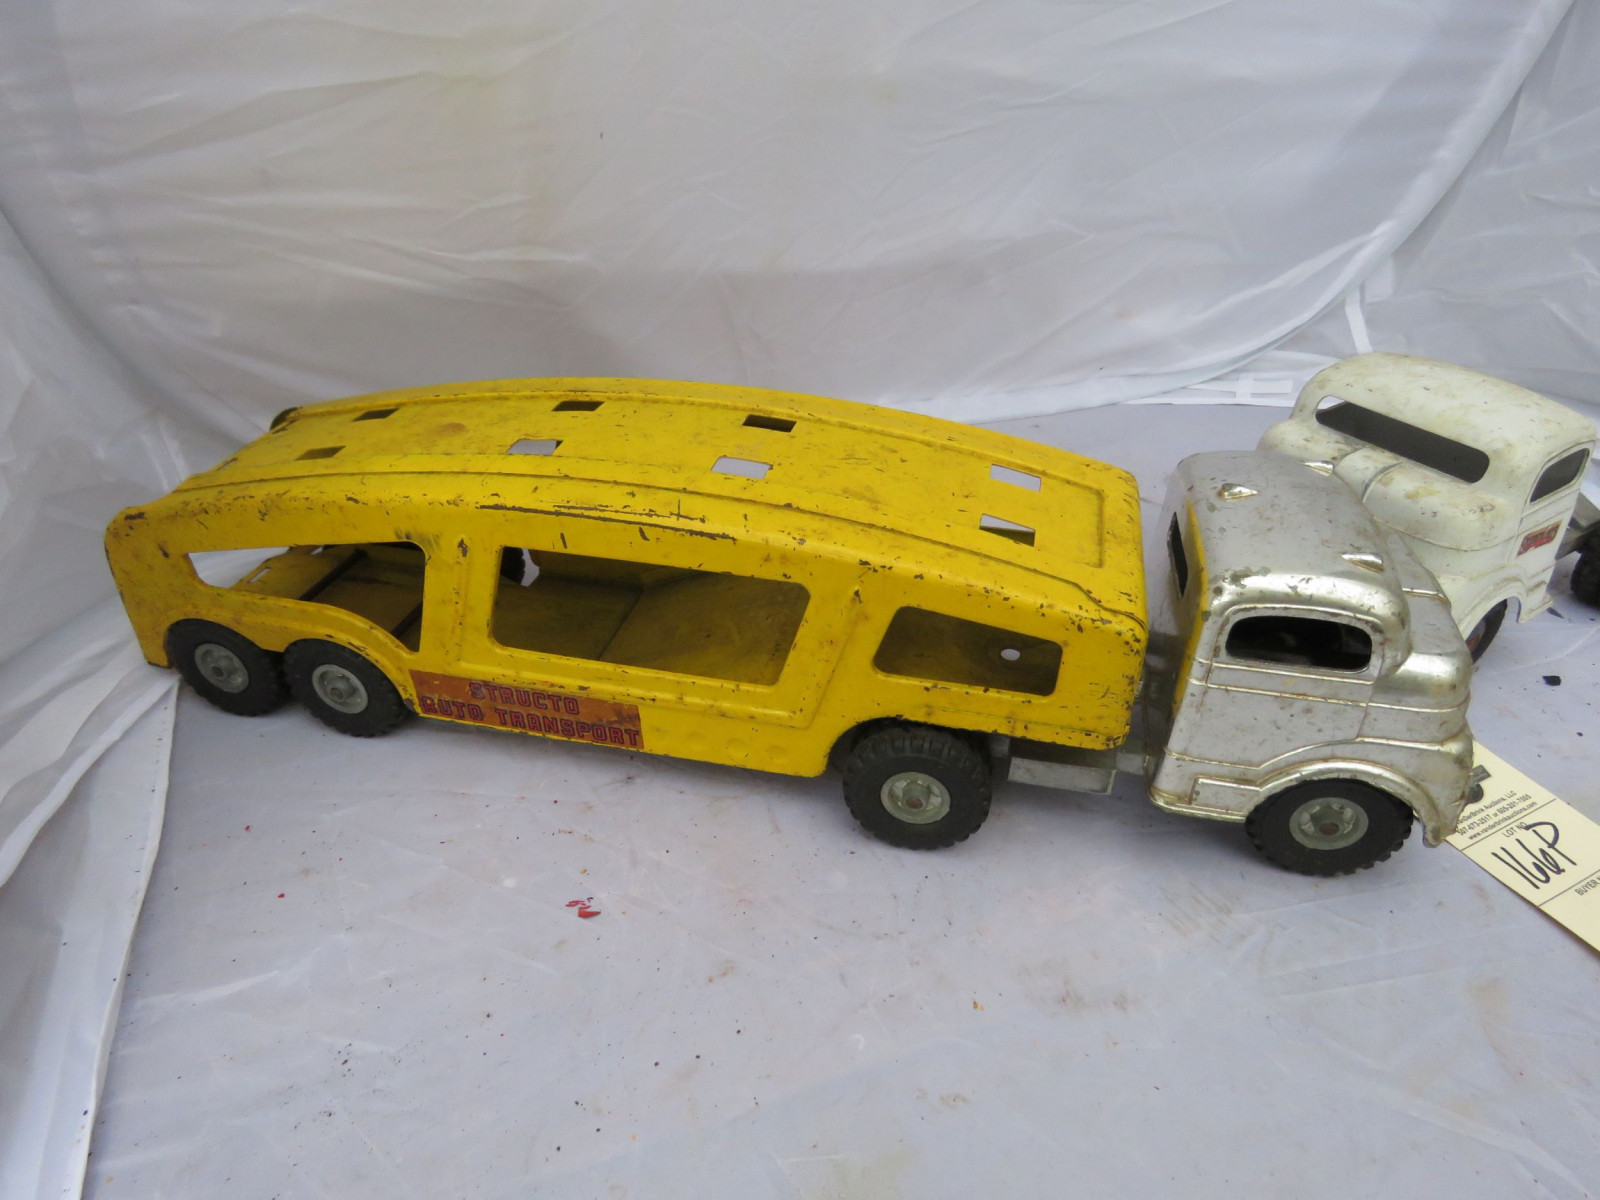 Vintage Tin Car Hauler and Truck - Image 2